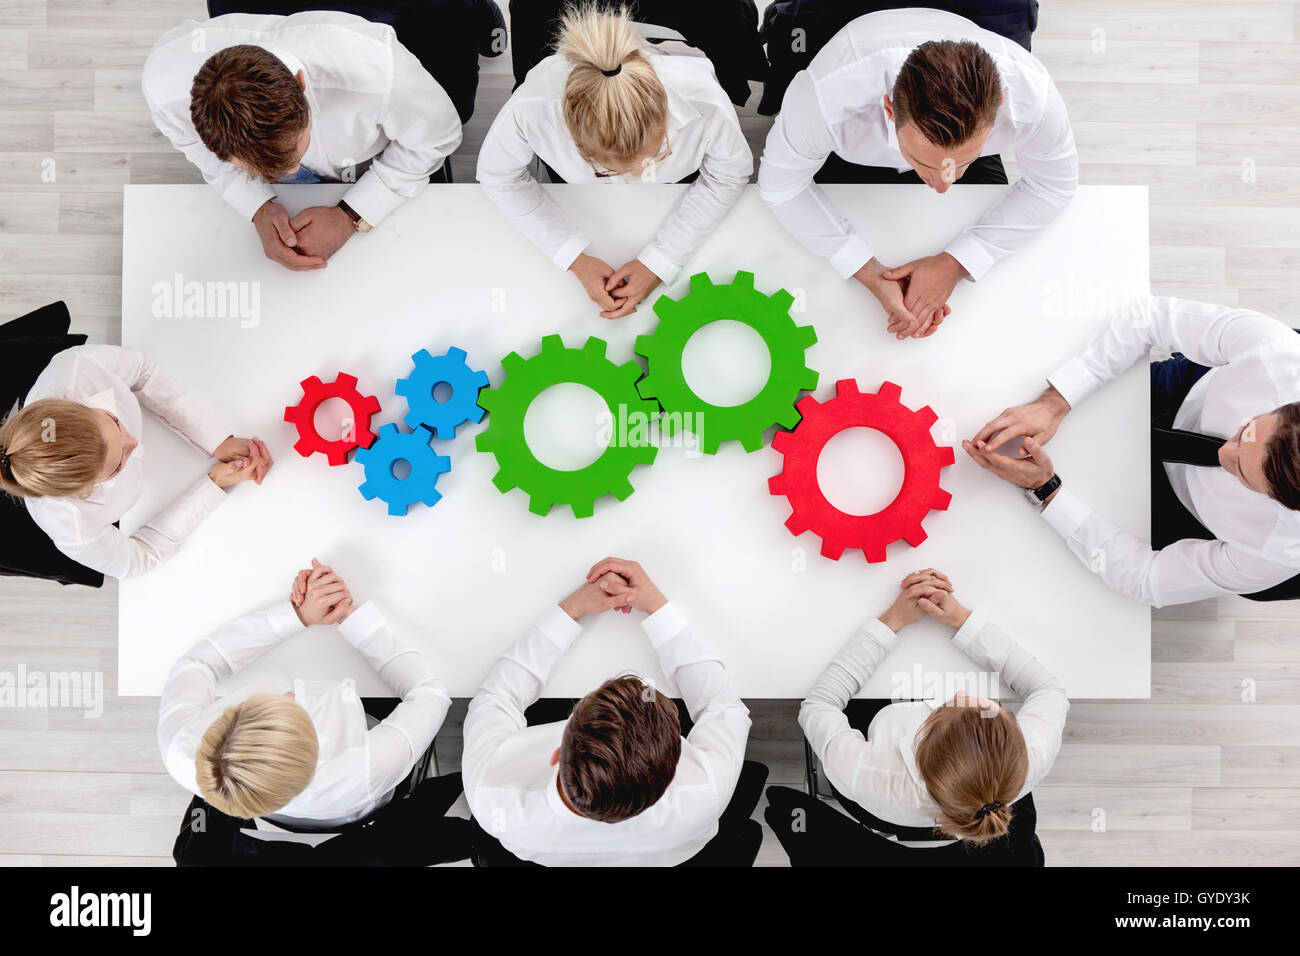 Business team sitting around the table with cogs, teamwork concept - Stock Image